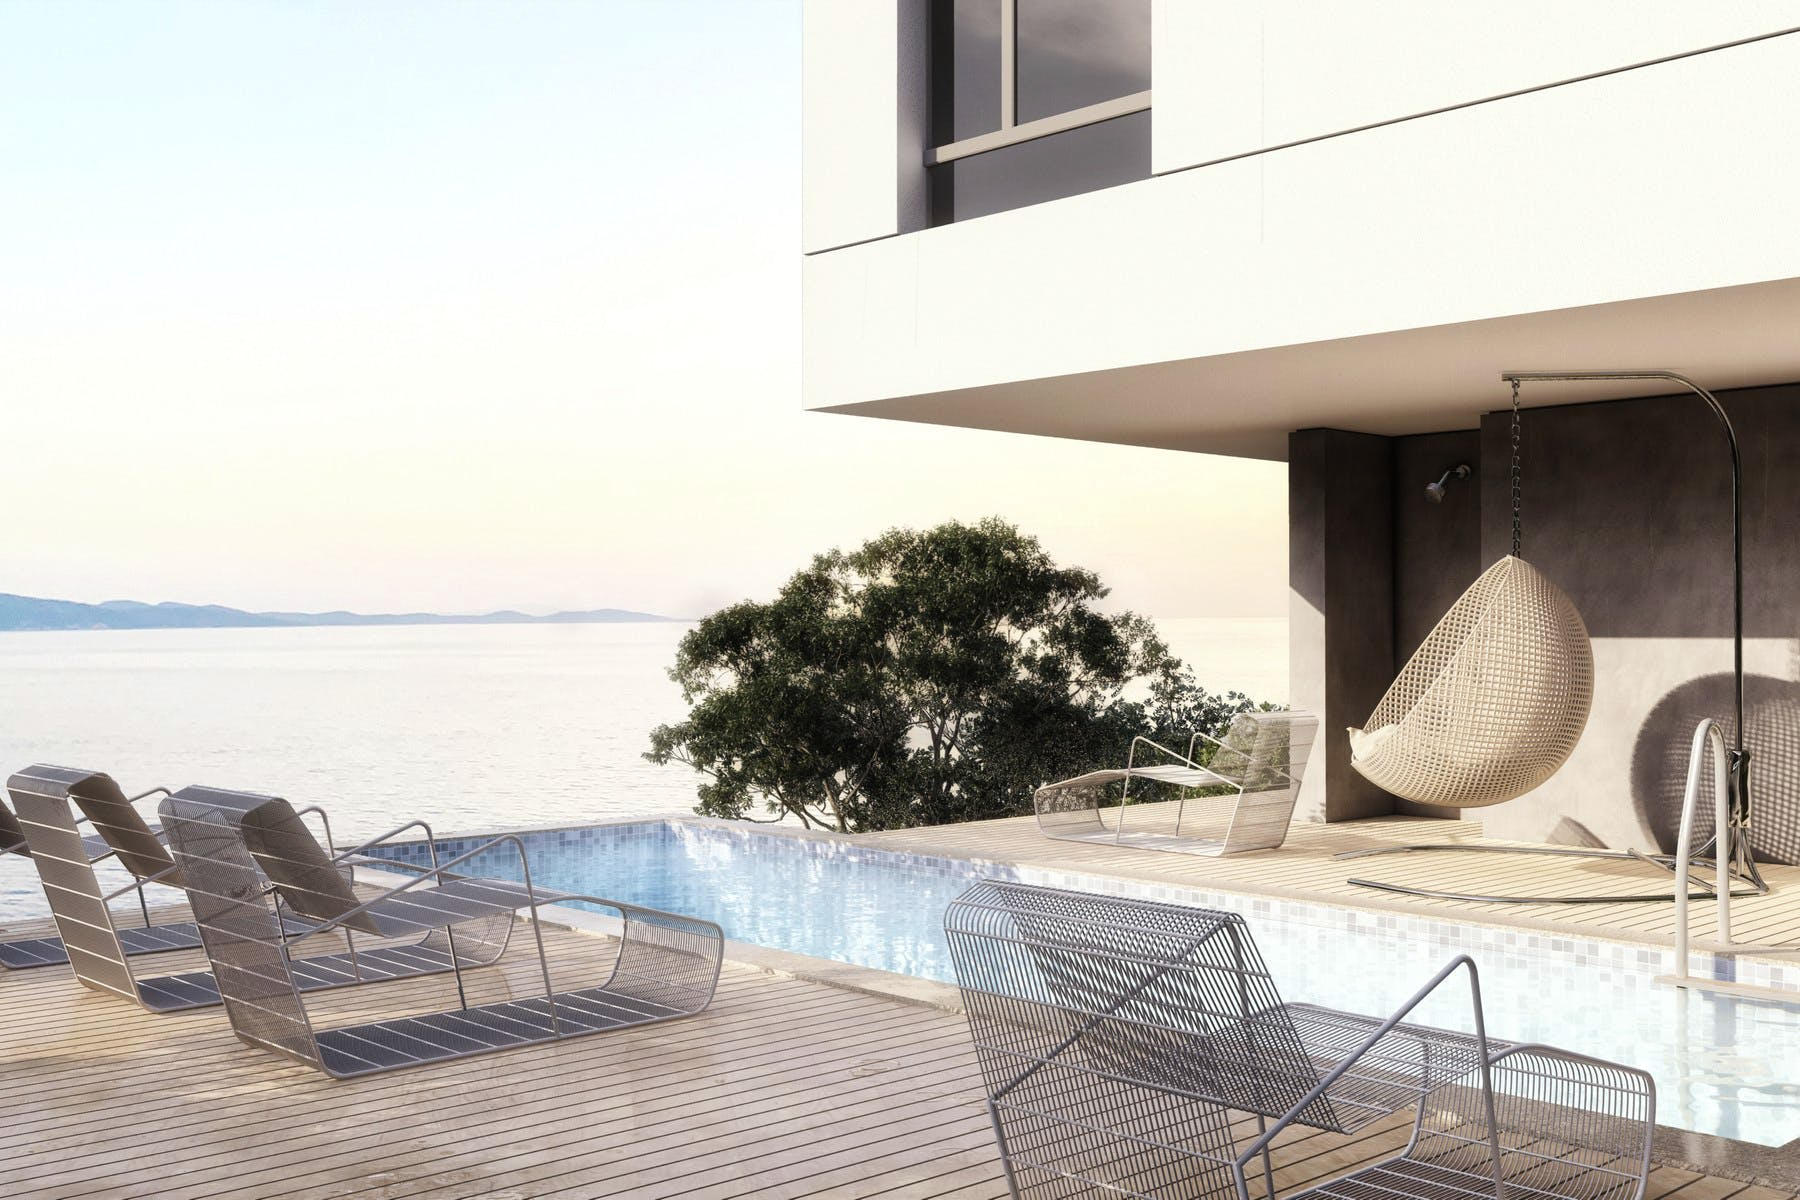 Spacious terrace with swimming pool, sun deck, lounge area and sea view